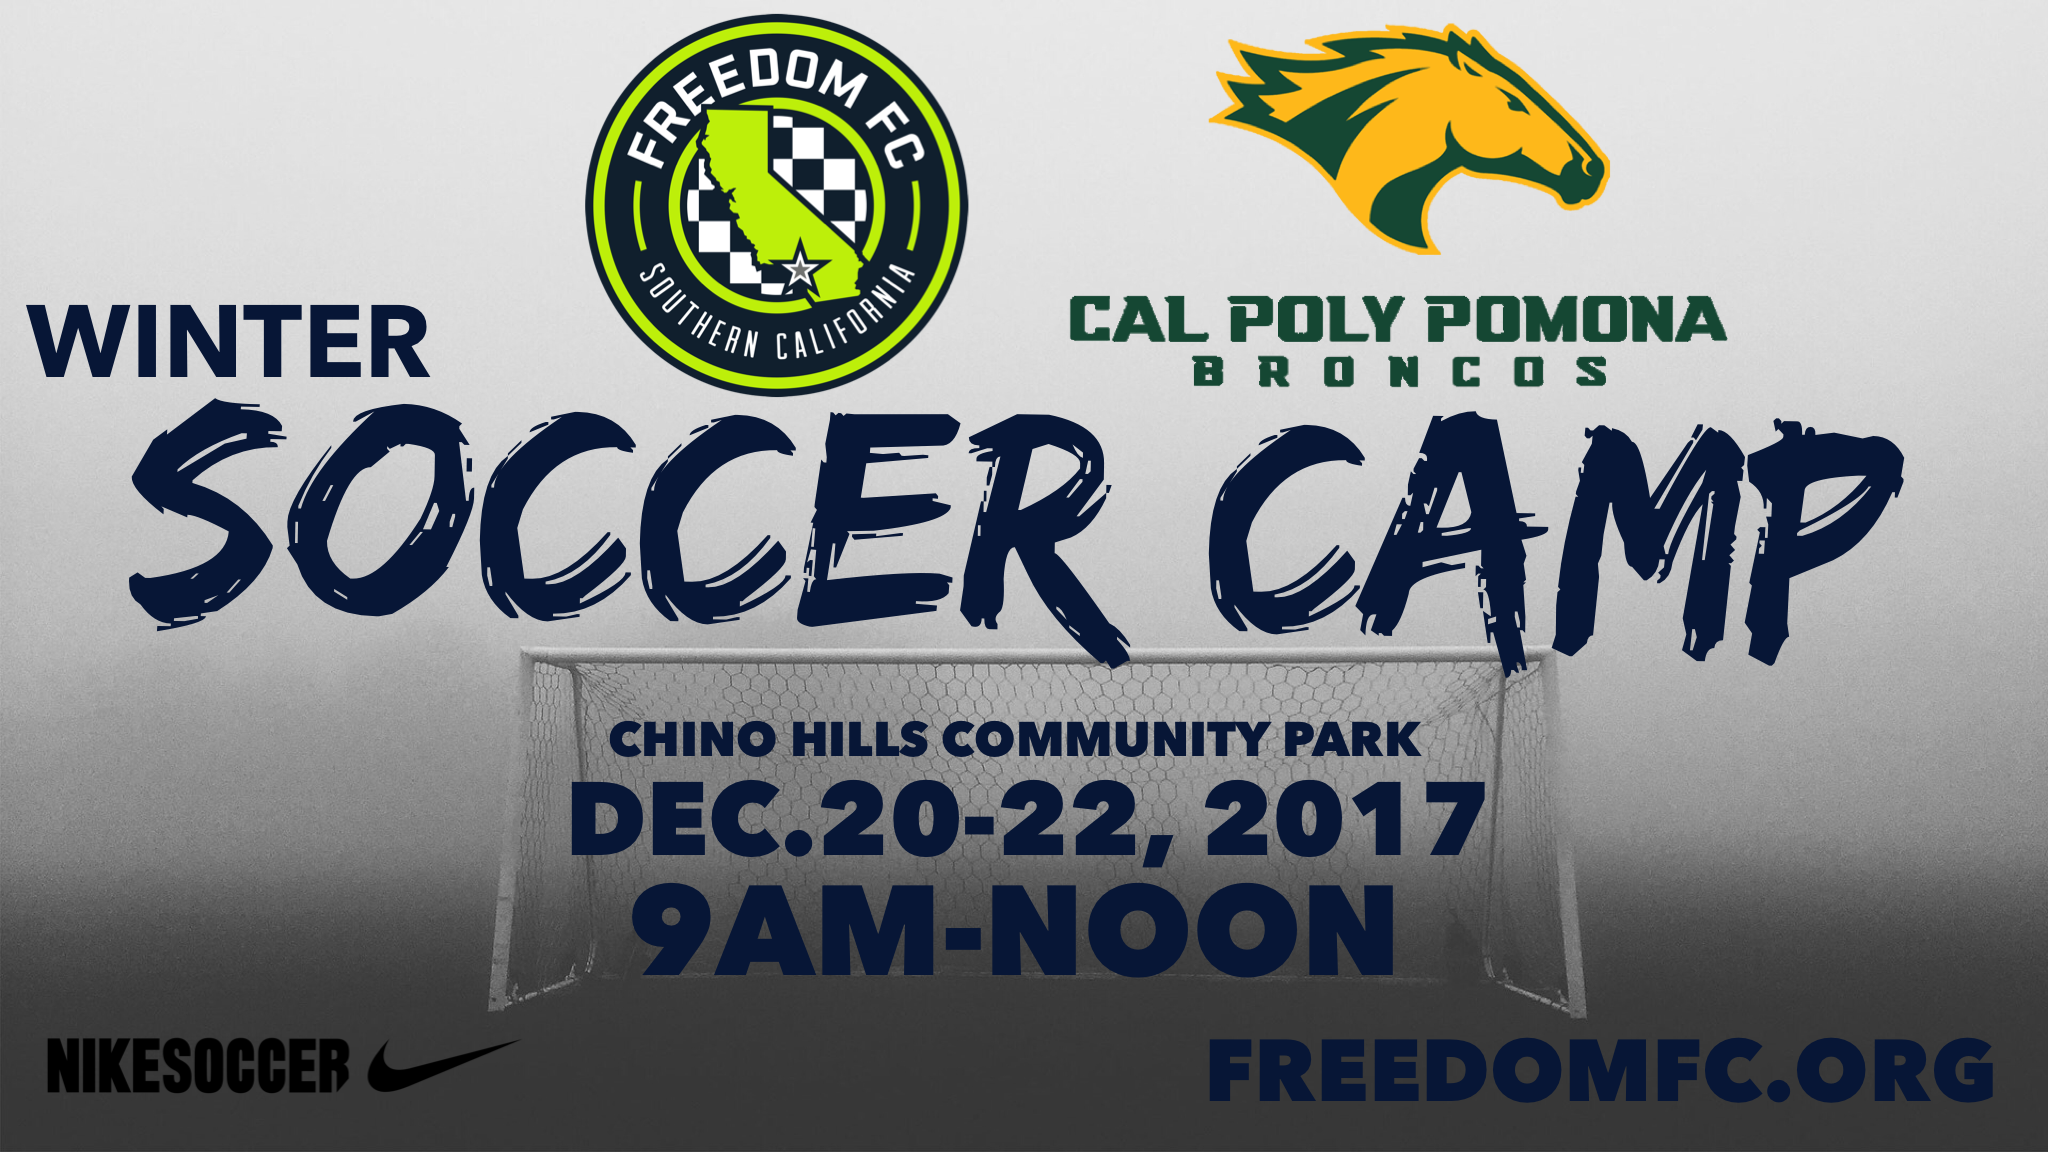 FFC 2017 Winter Camp with Cal Poly